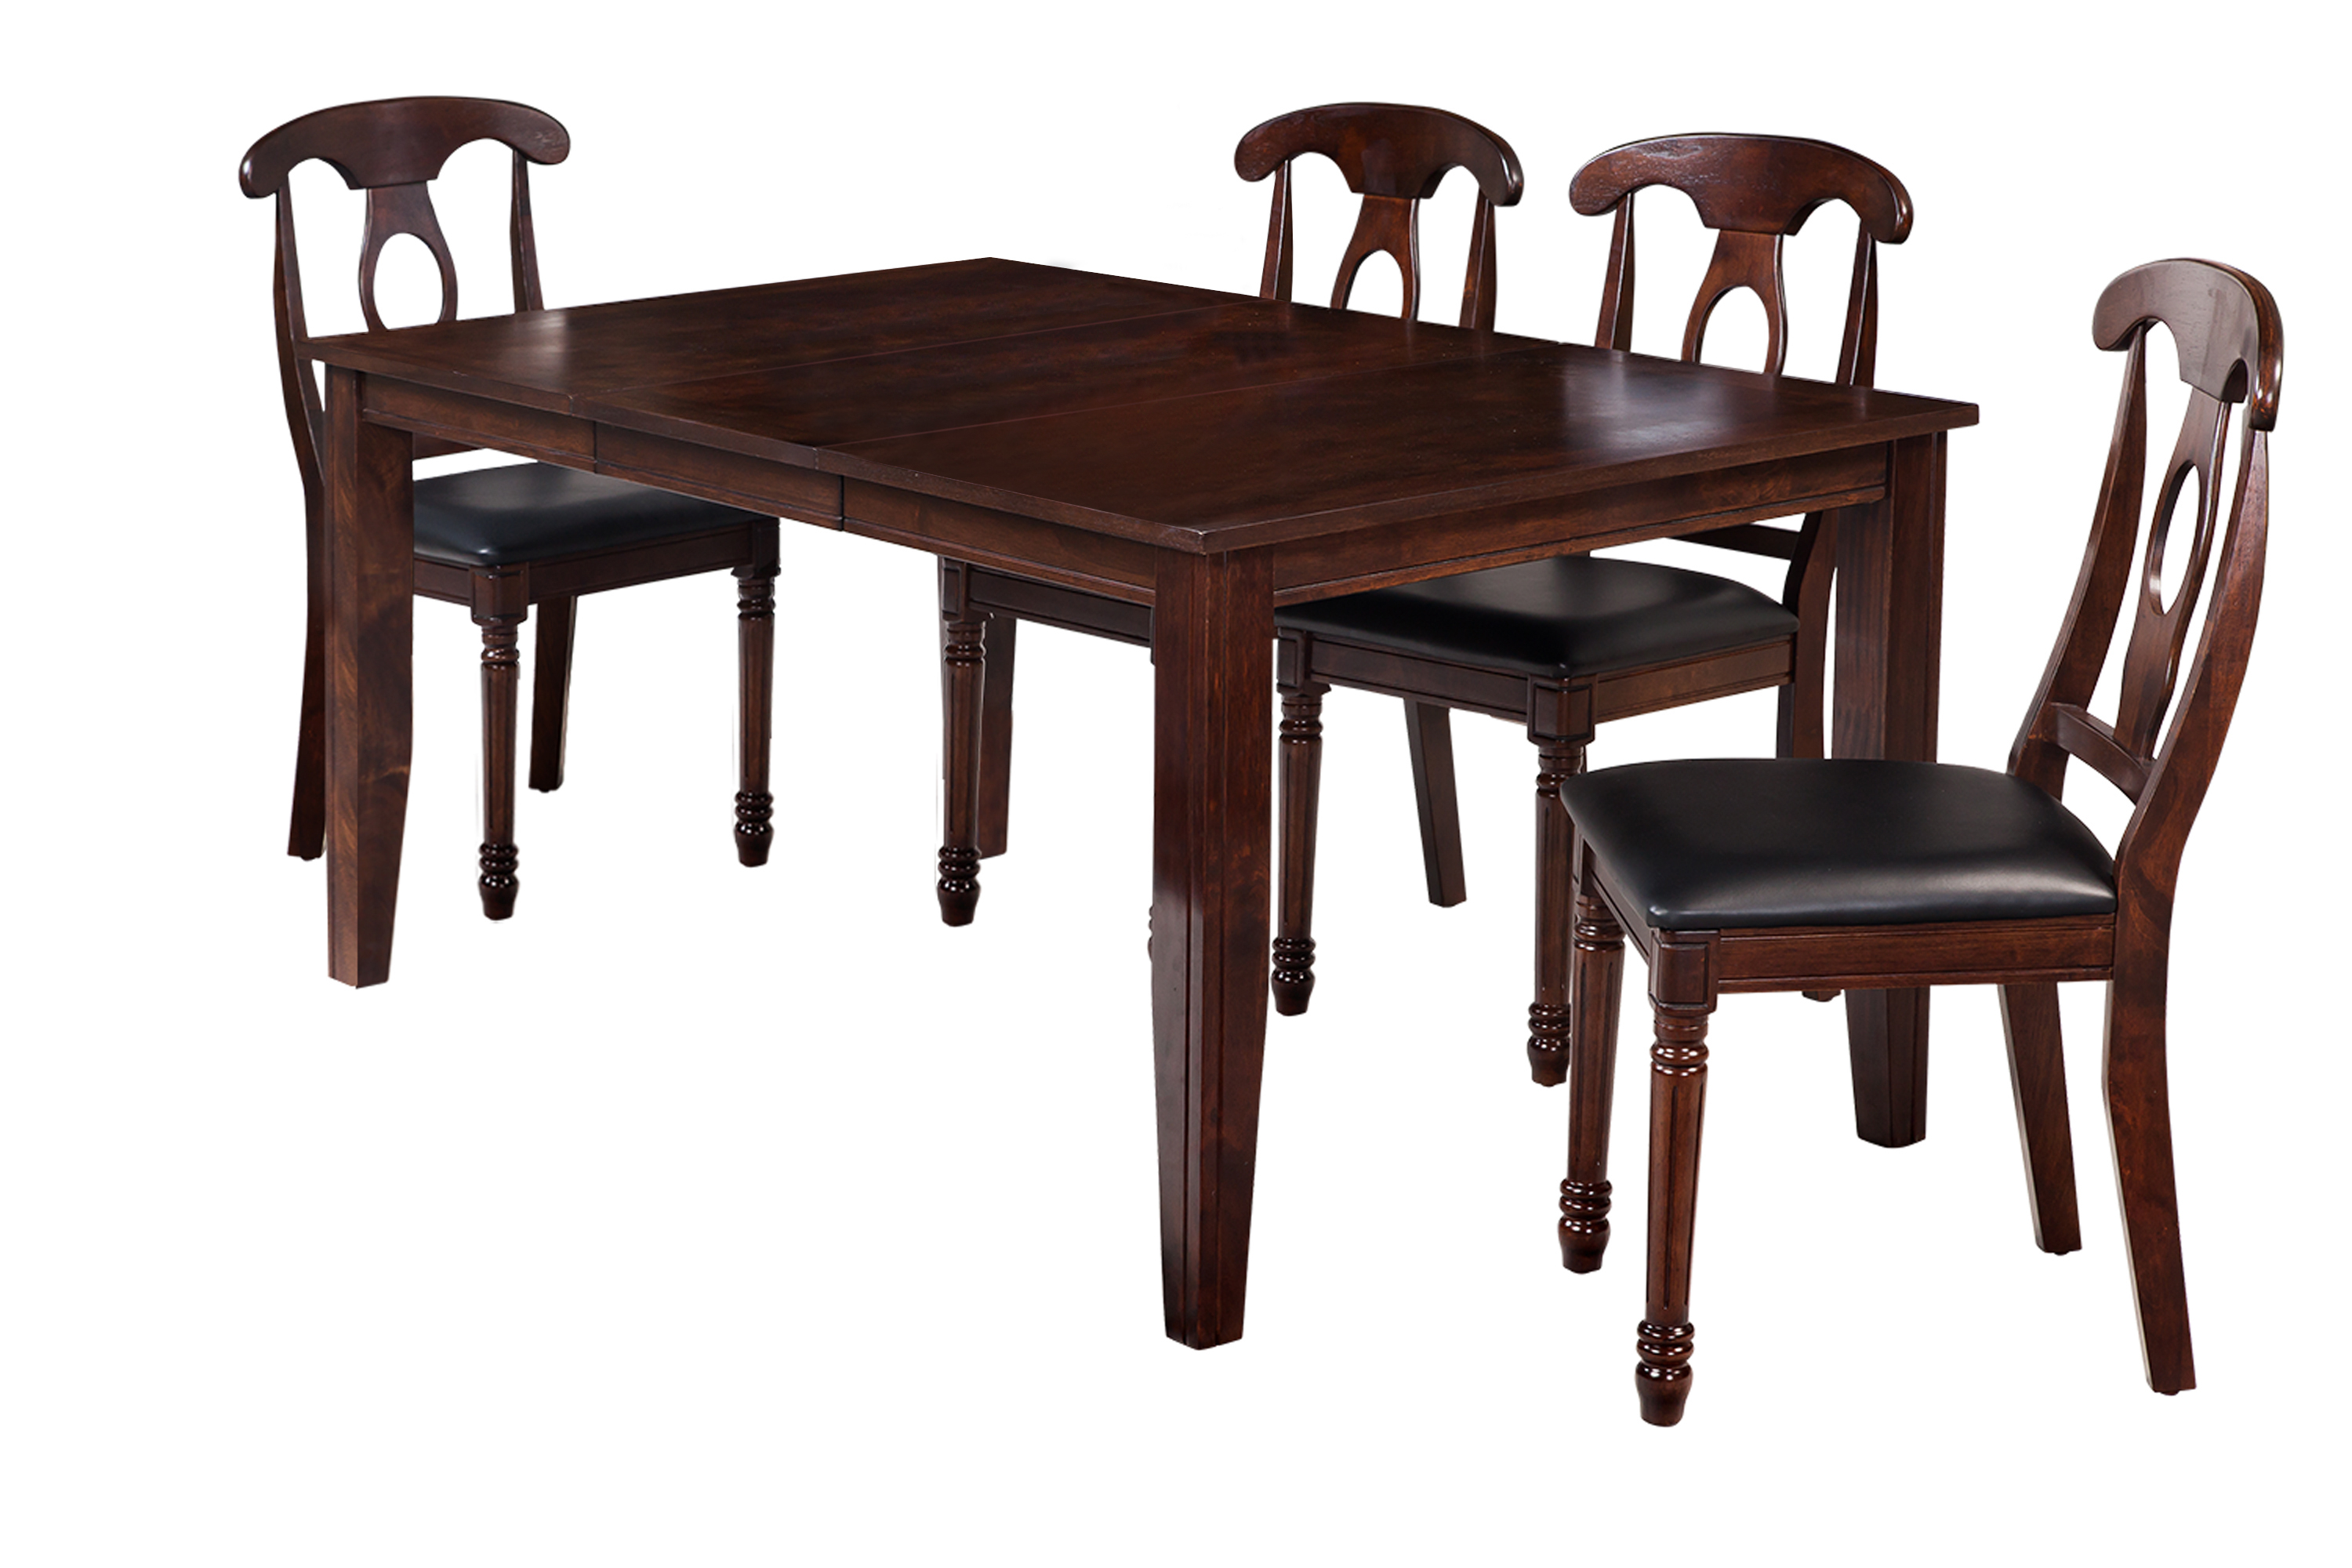 Ttp Furnish In Most Current Adan 5 Piece Solid Wood Dining Sets (Set Of 5) (View 13 of 20)